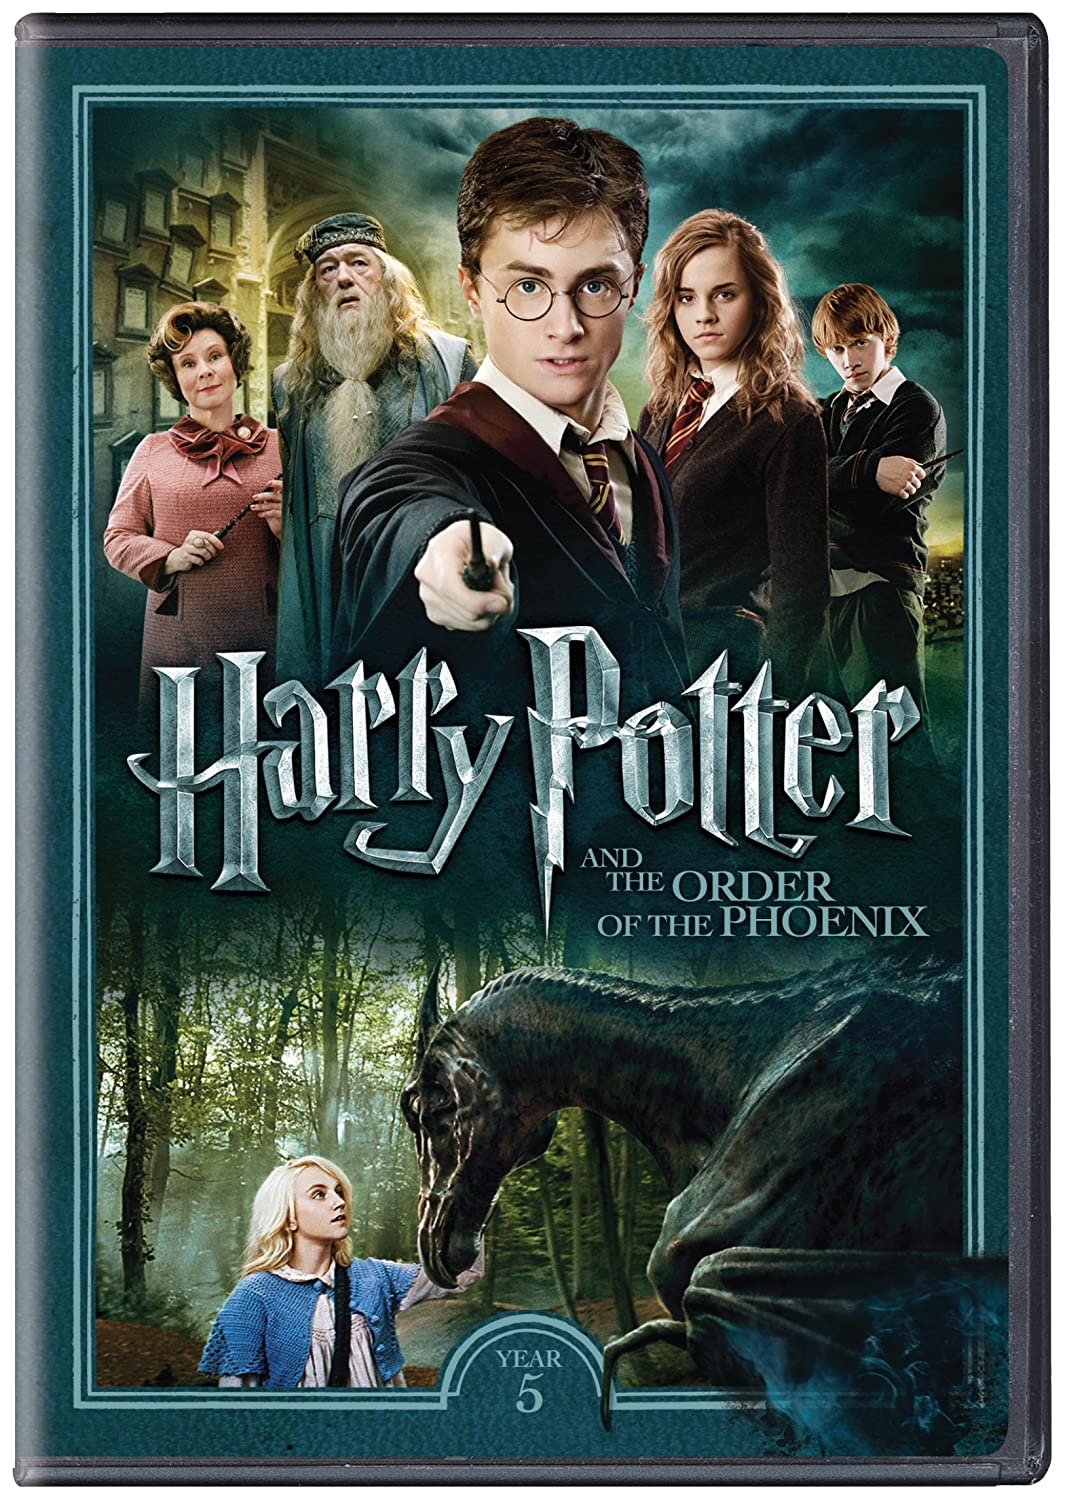 Harry Potter And The Order Of The Phoenix 2007 Year 5 Amazon In Daniel Radcliffe Emma Watson Rupert Grint David Yates Daniel Radcliffe Emma Watson Movies Tv Shows